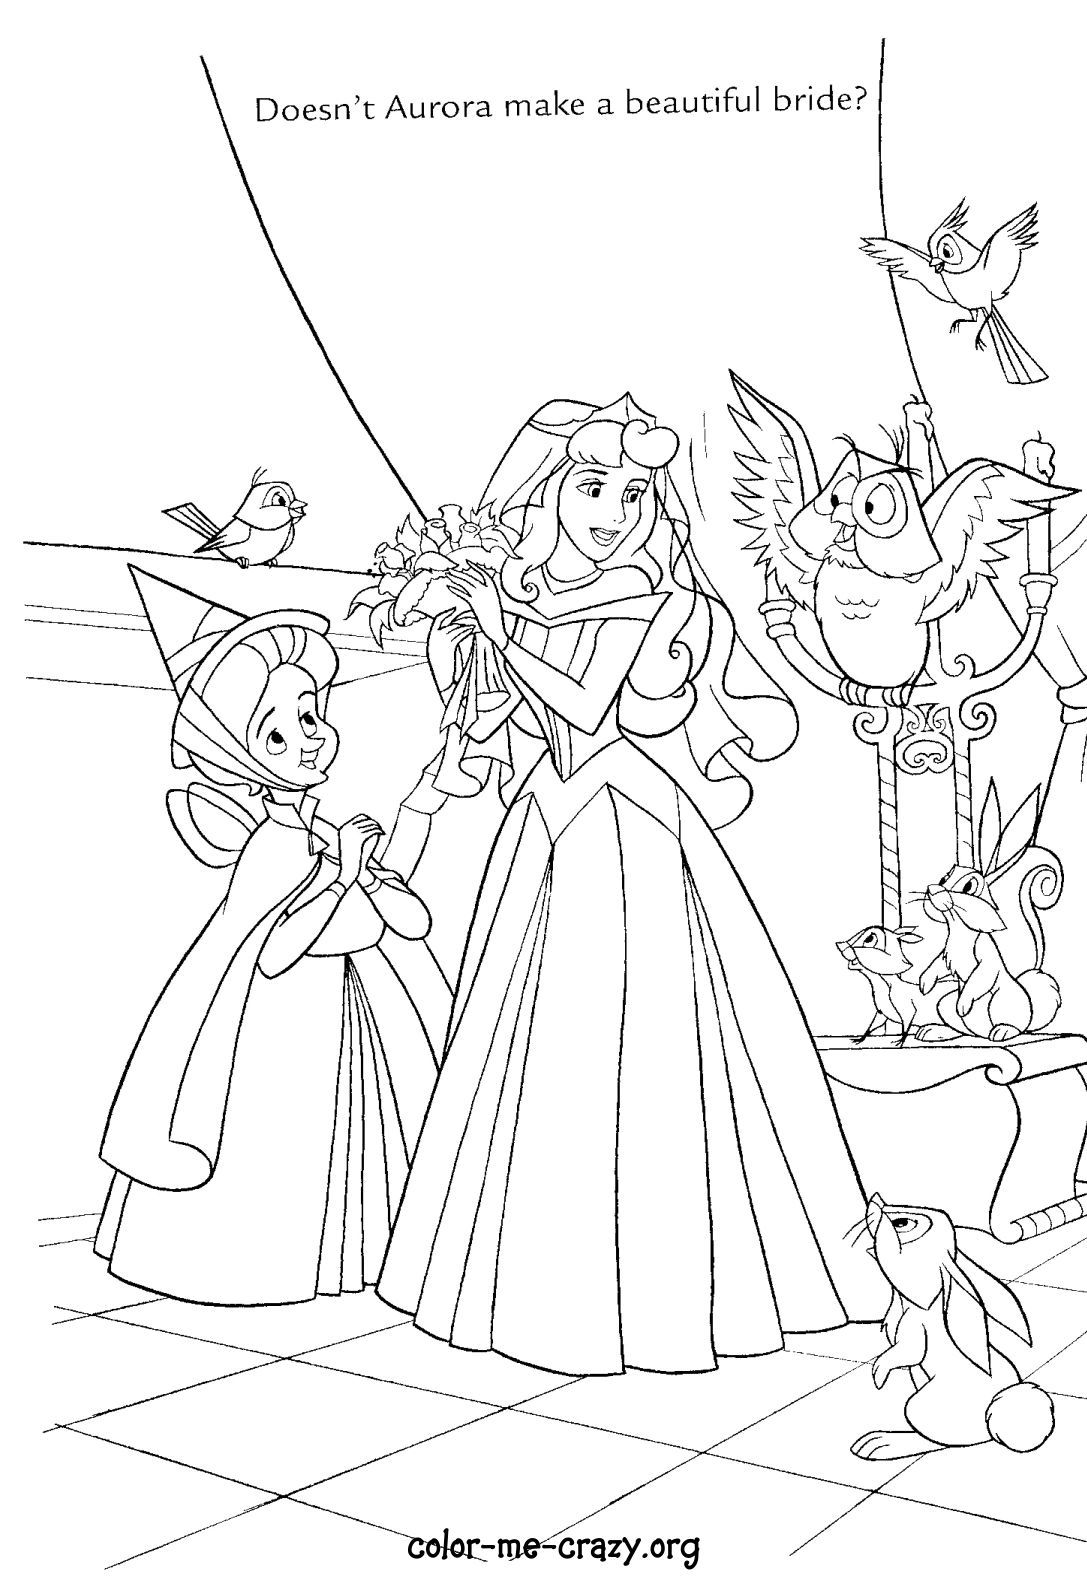 Princess wedding coloring pages - A Whole Bunch Of Disney Princess Wedding Themed Colouring Pages To Keep The Little Girls Entertained